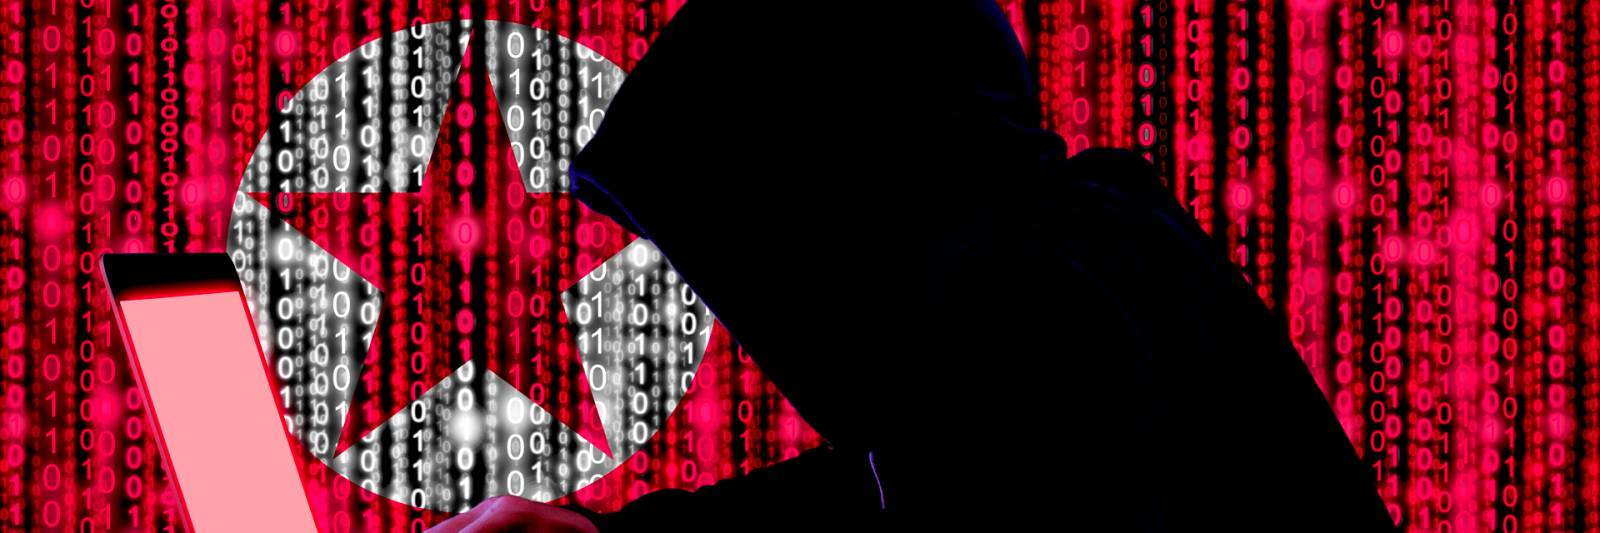 North Korea Expected To Increase Cyber Attacks Due To Covid